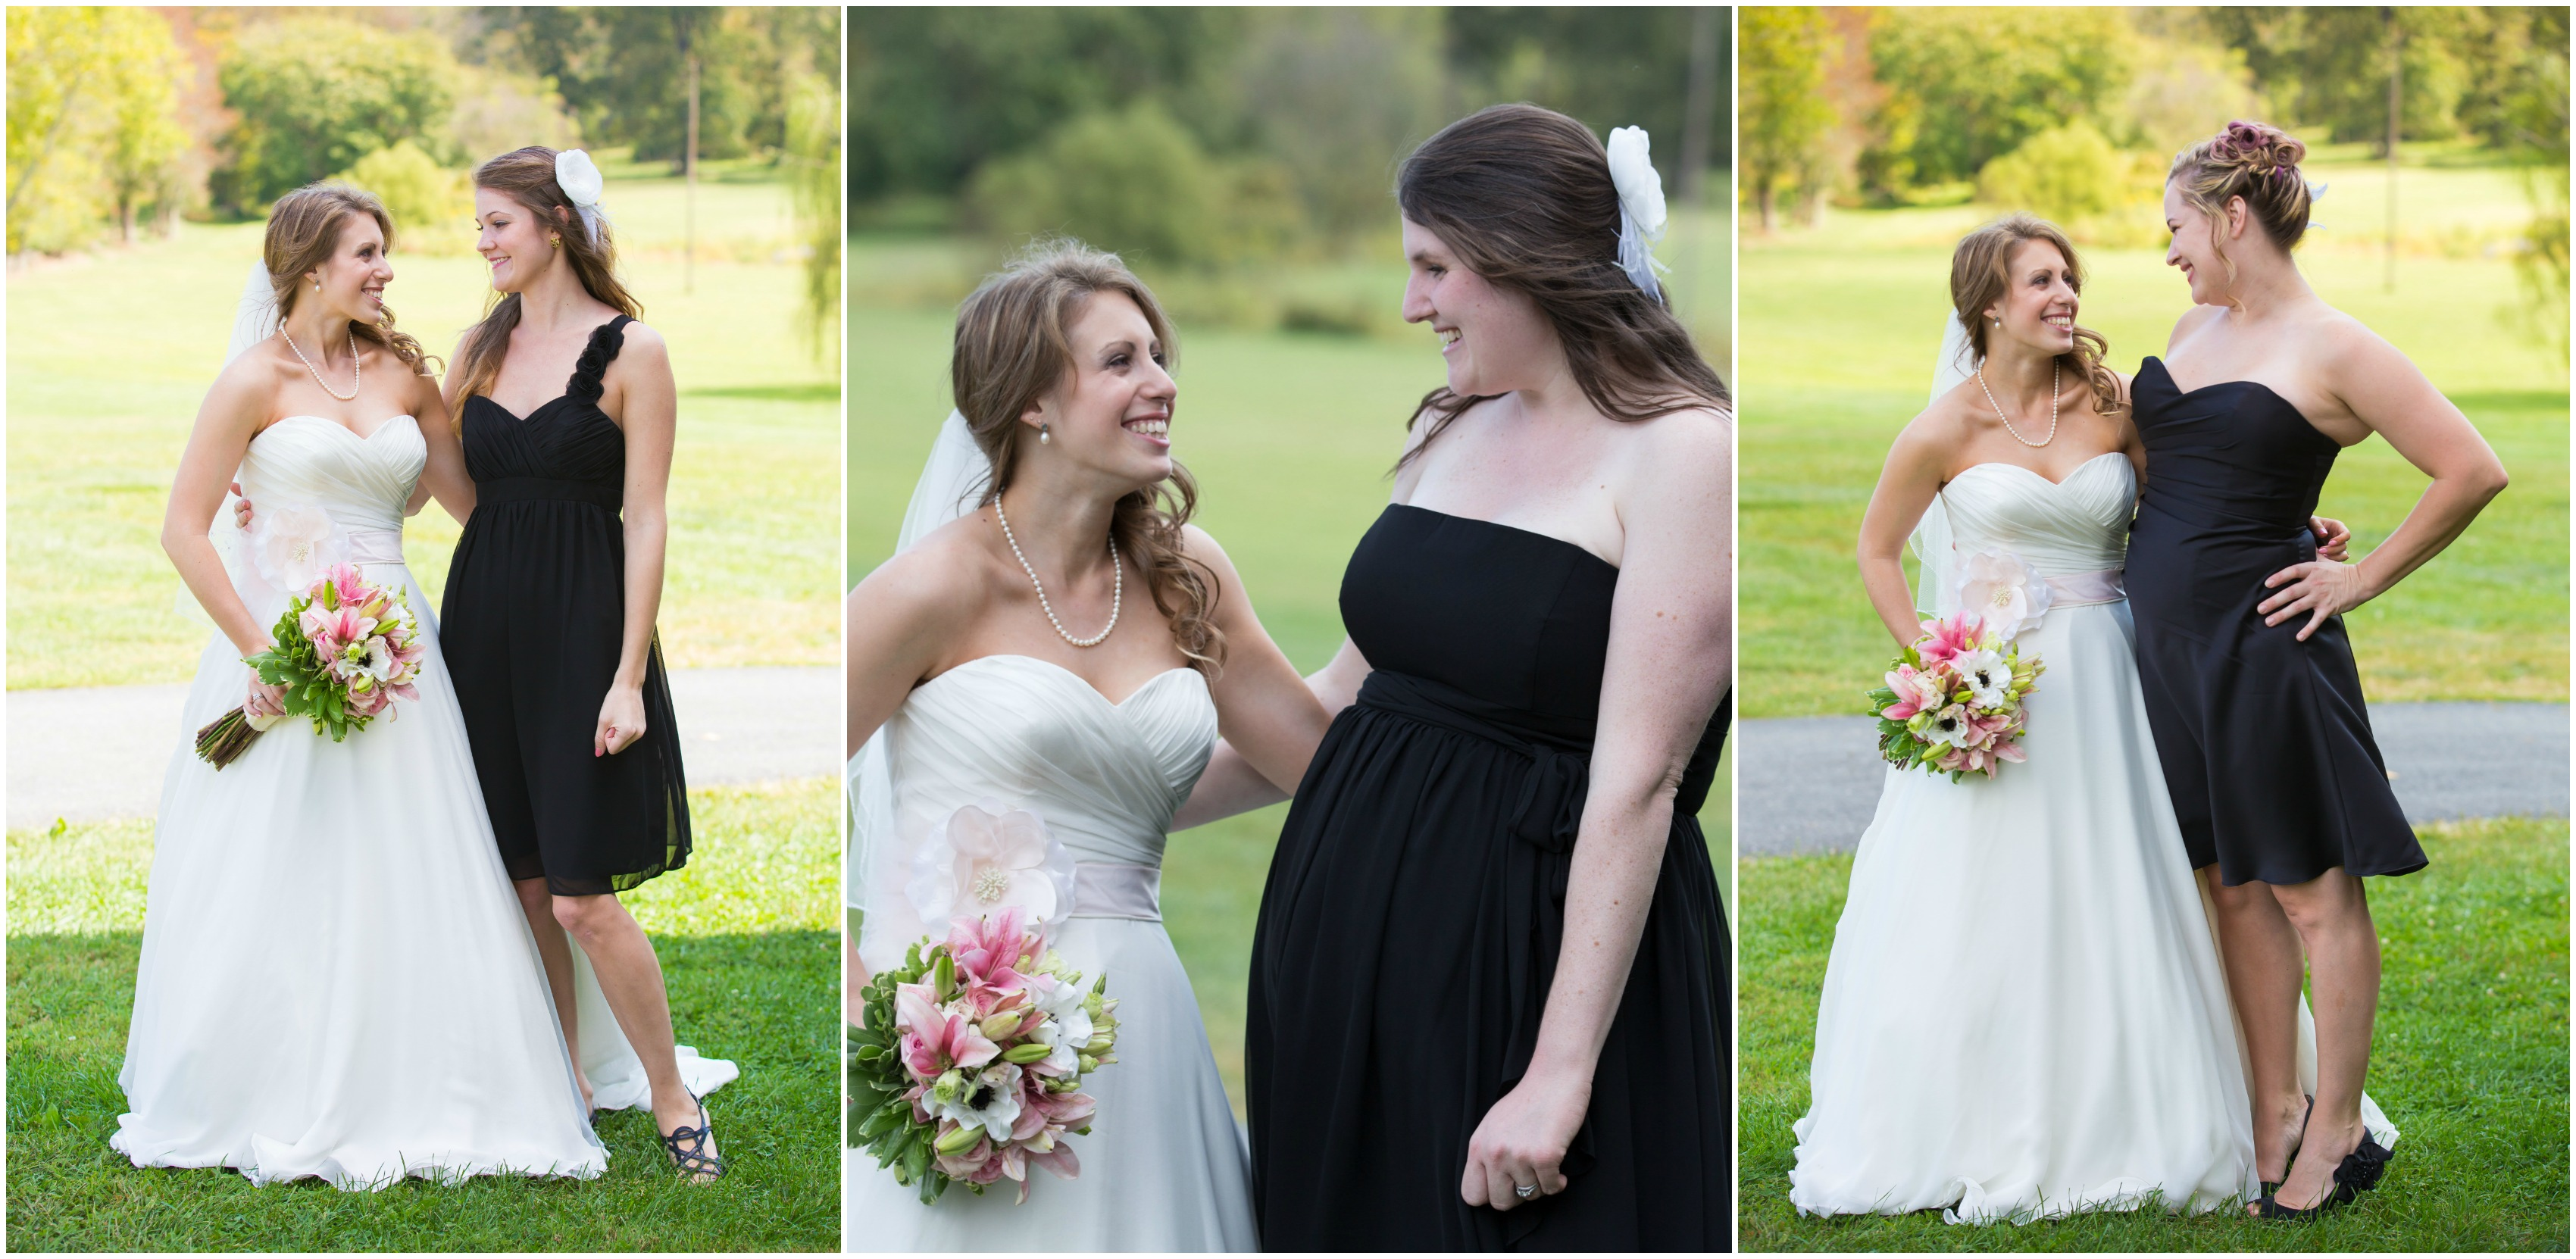 Bridesmaid portraits